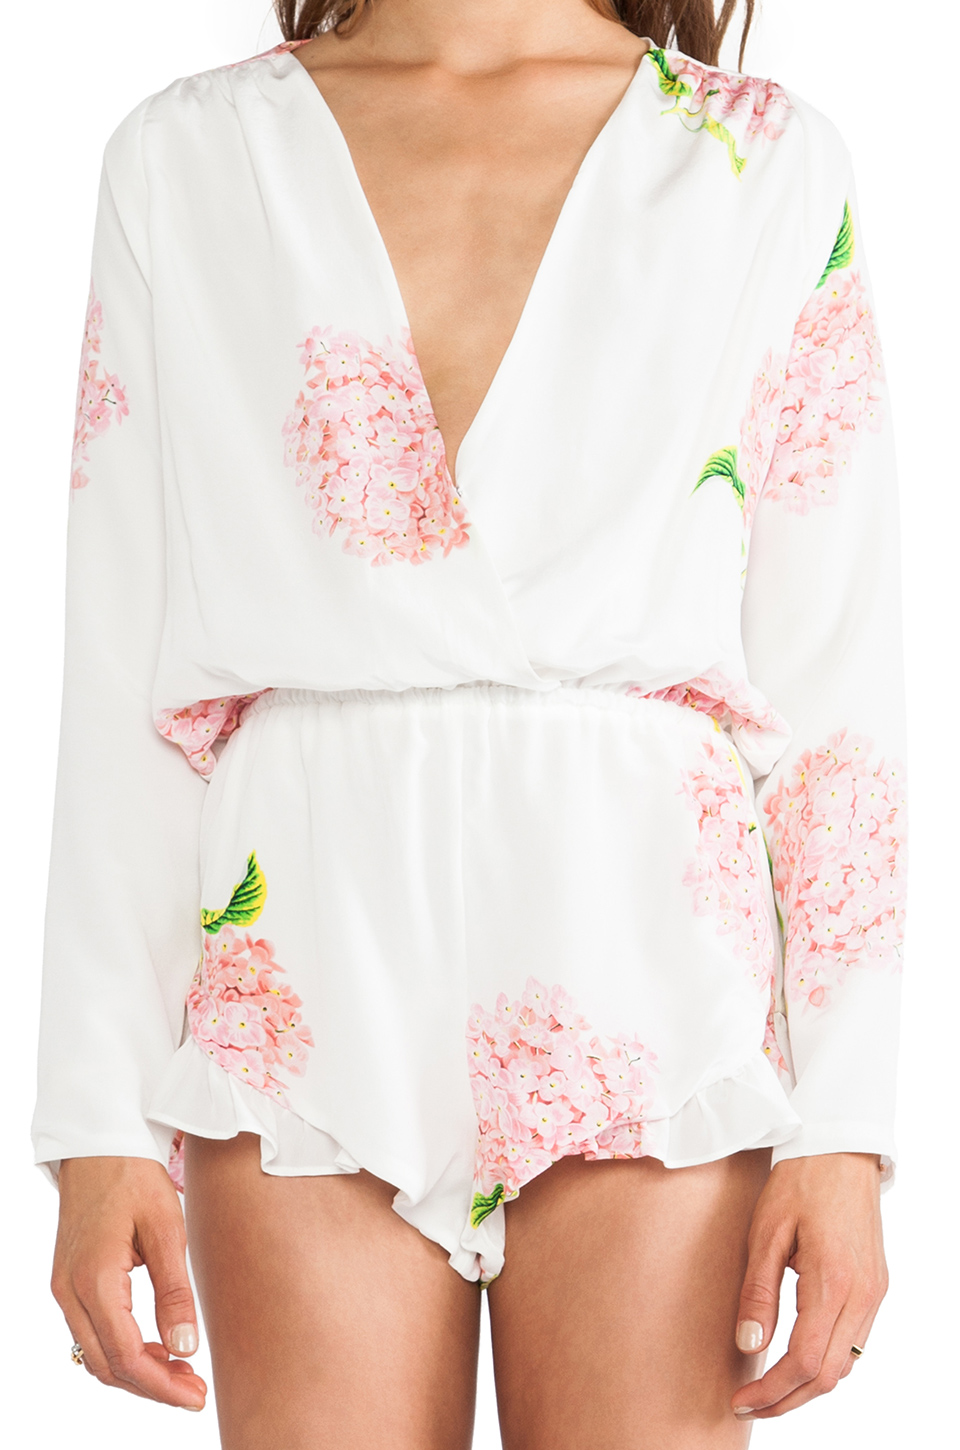 STONE_COLD_FOX Love Jumper in White Bloom | REVOLVE